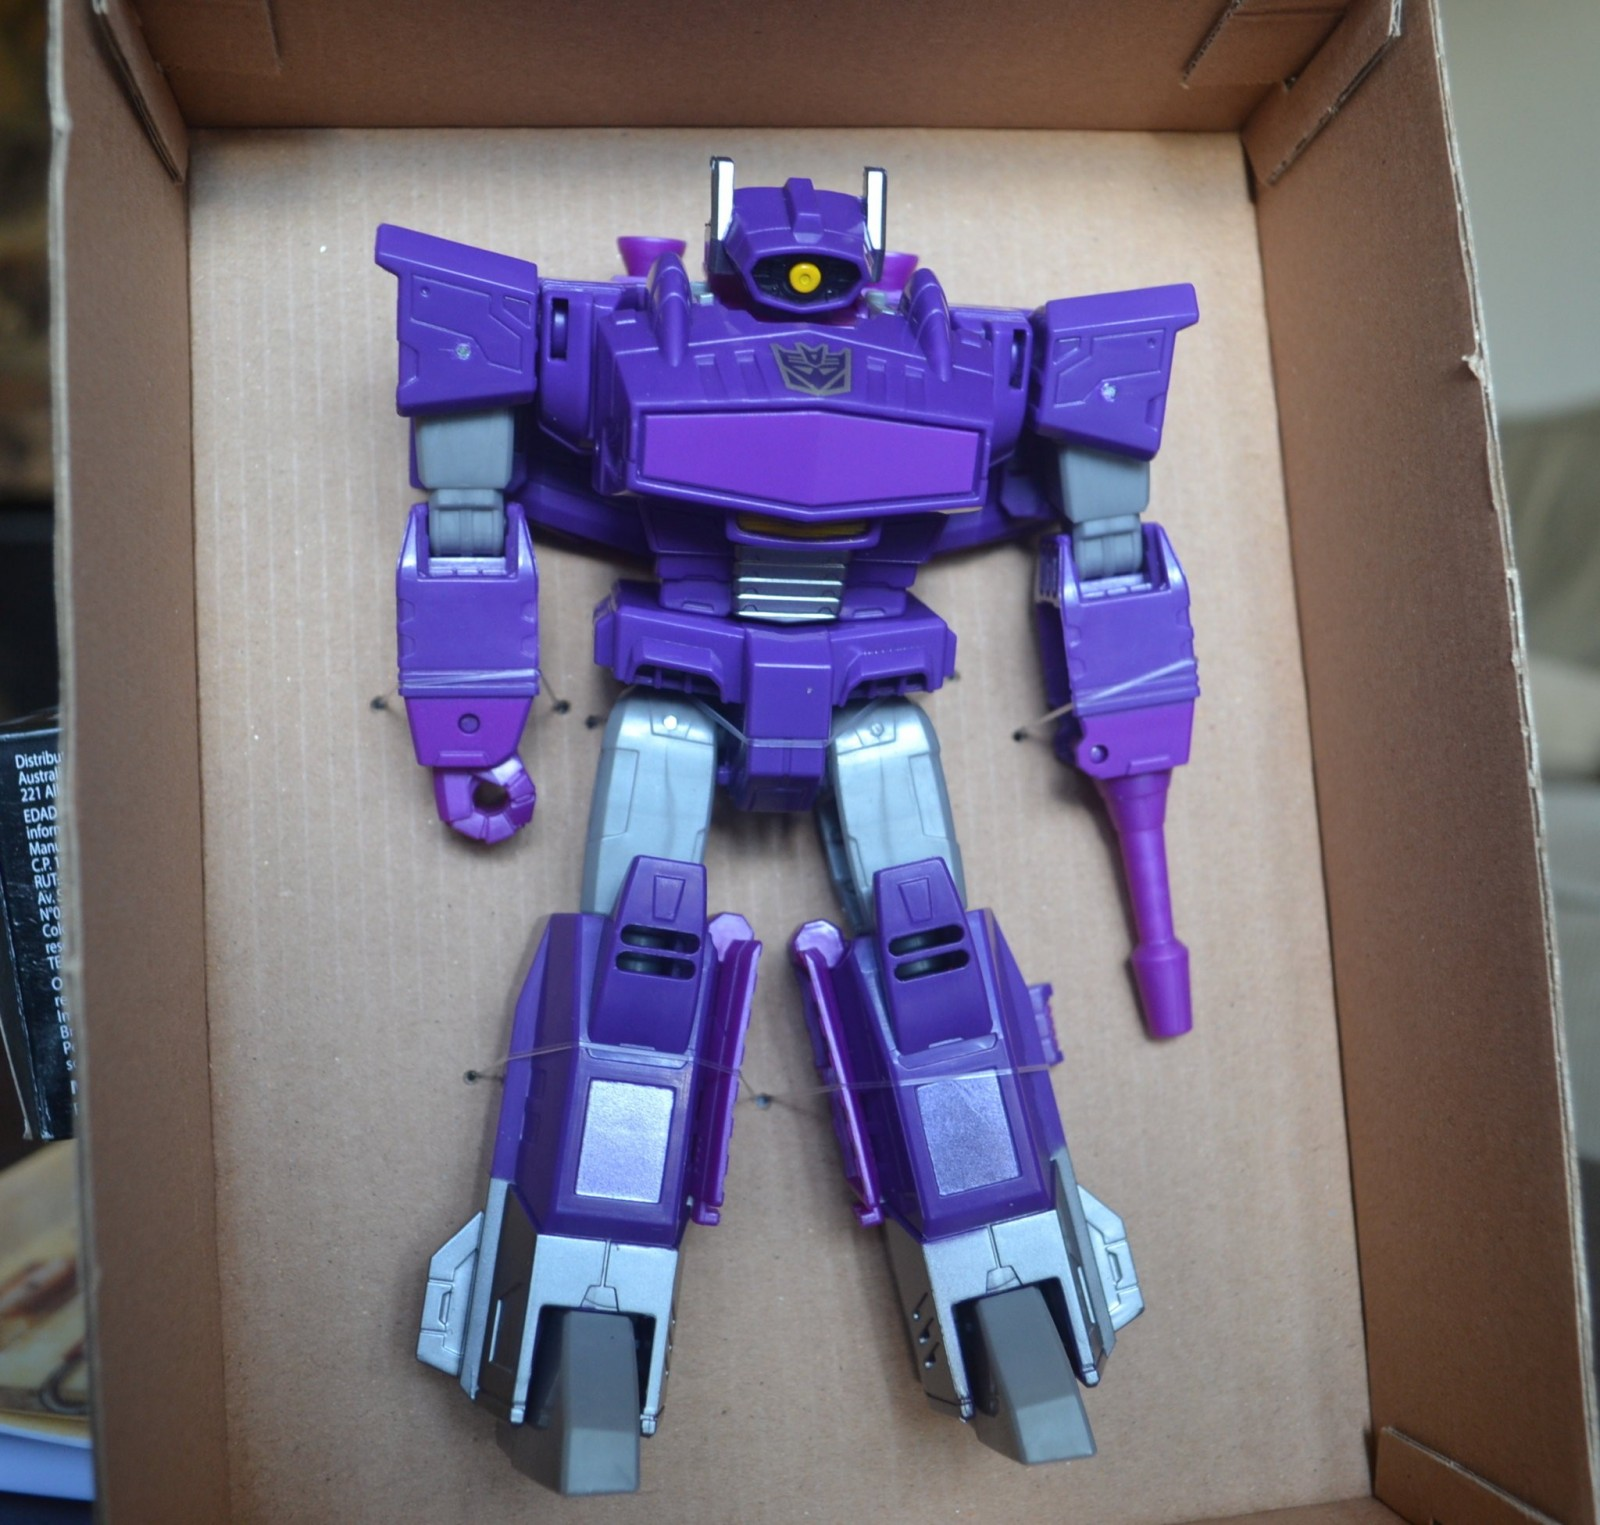 Transformers News: Transformers Generations Cyber Battalion Shockwave and Sideswipe Found in US  + More In Hand Images